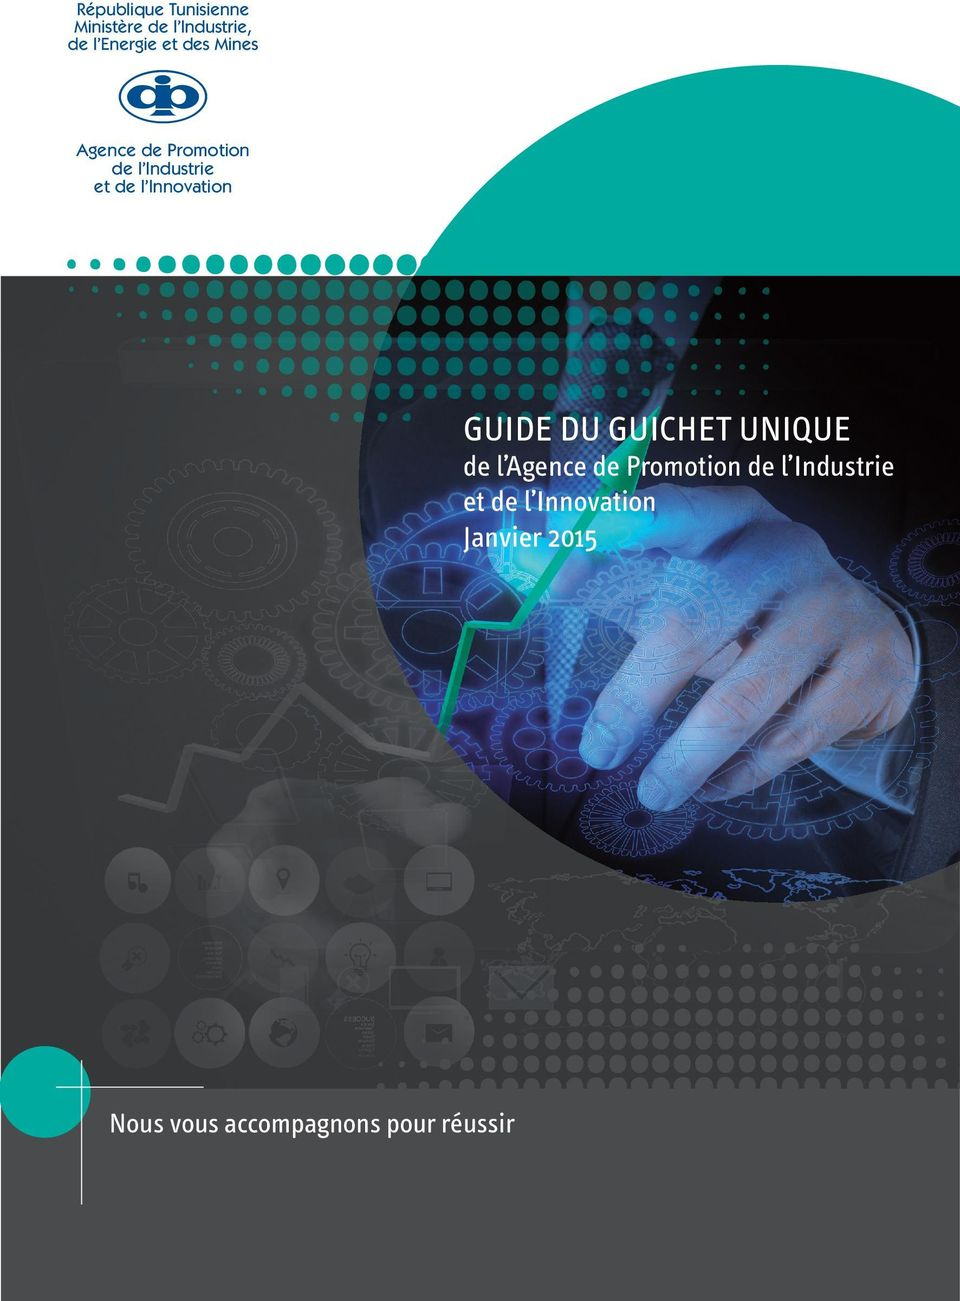 GUIDE DU GUICHET UNIQUE de l Agence de Promotion de l Industrie